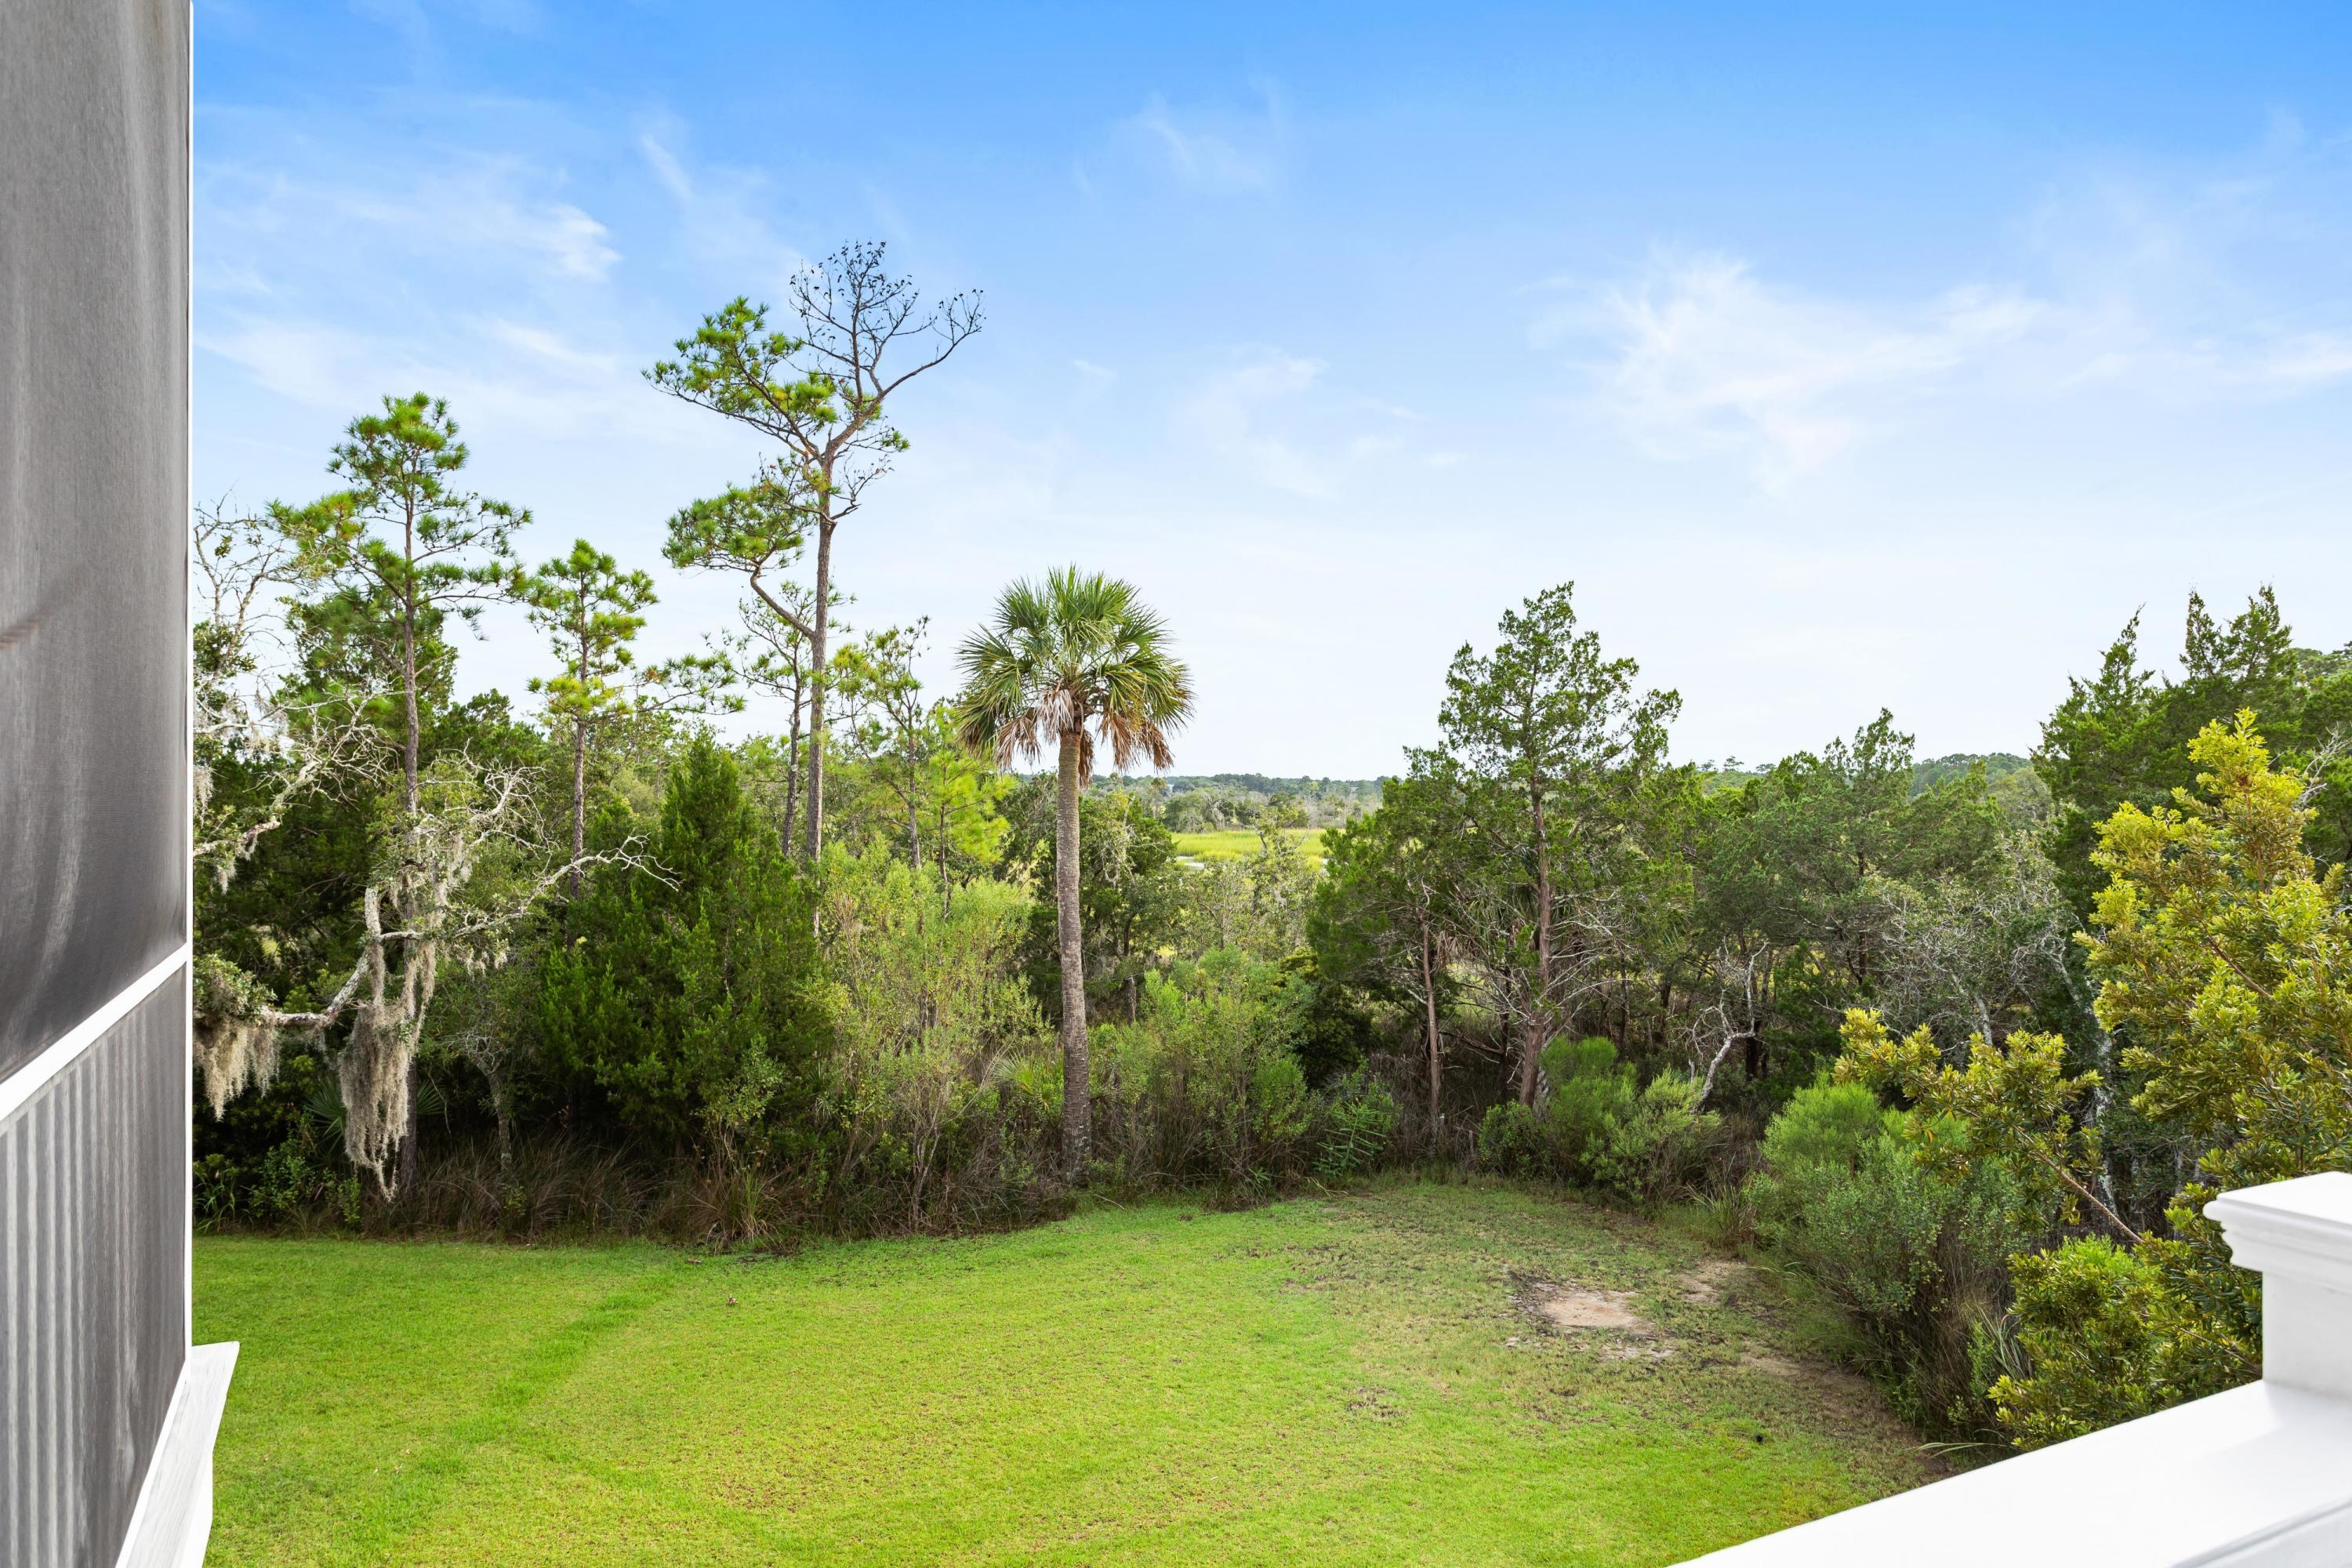 Stratton by the Sound Homes For Sale - 1400 Stratton, Mount Pleasant, SC - 45